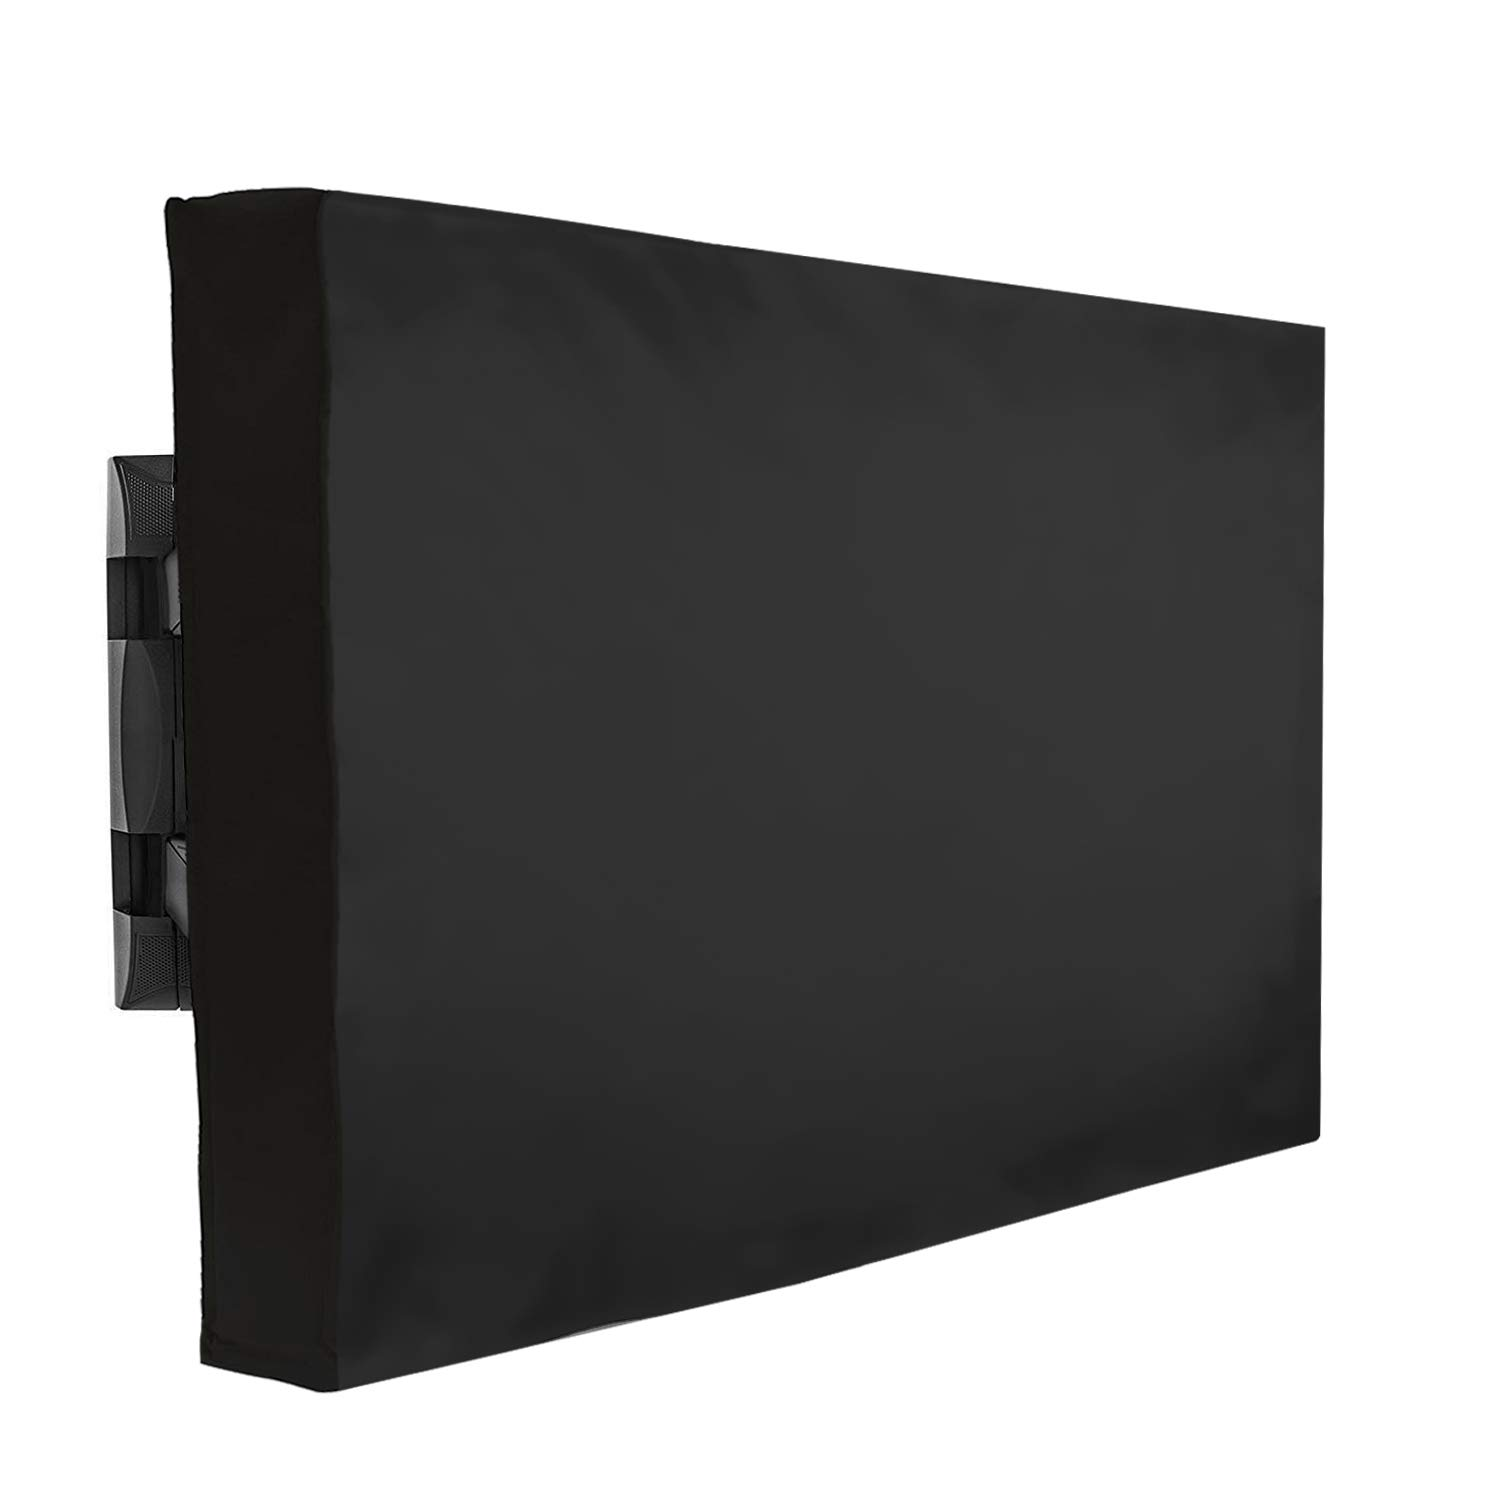 Liebsup Outdoor TV Cover Universal Weatherproof Dust-Proof Protector for 30'-32', 40'-42', 50'' - 52'', 55'' - 58' TV, Fits Most Mounts & Brackets (50'- 52') 40-42 50'' - 52'' 55'' - 58 TV Fits Most Mounts & Brackets (50- 52)